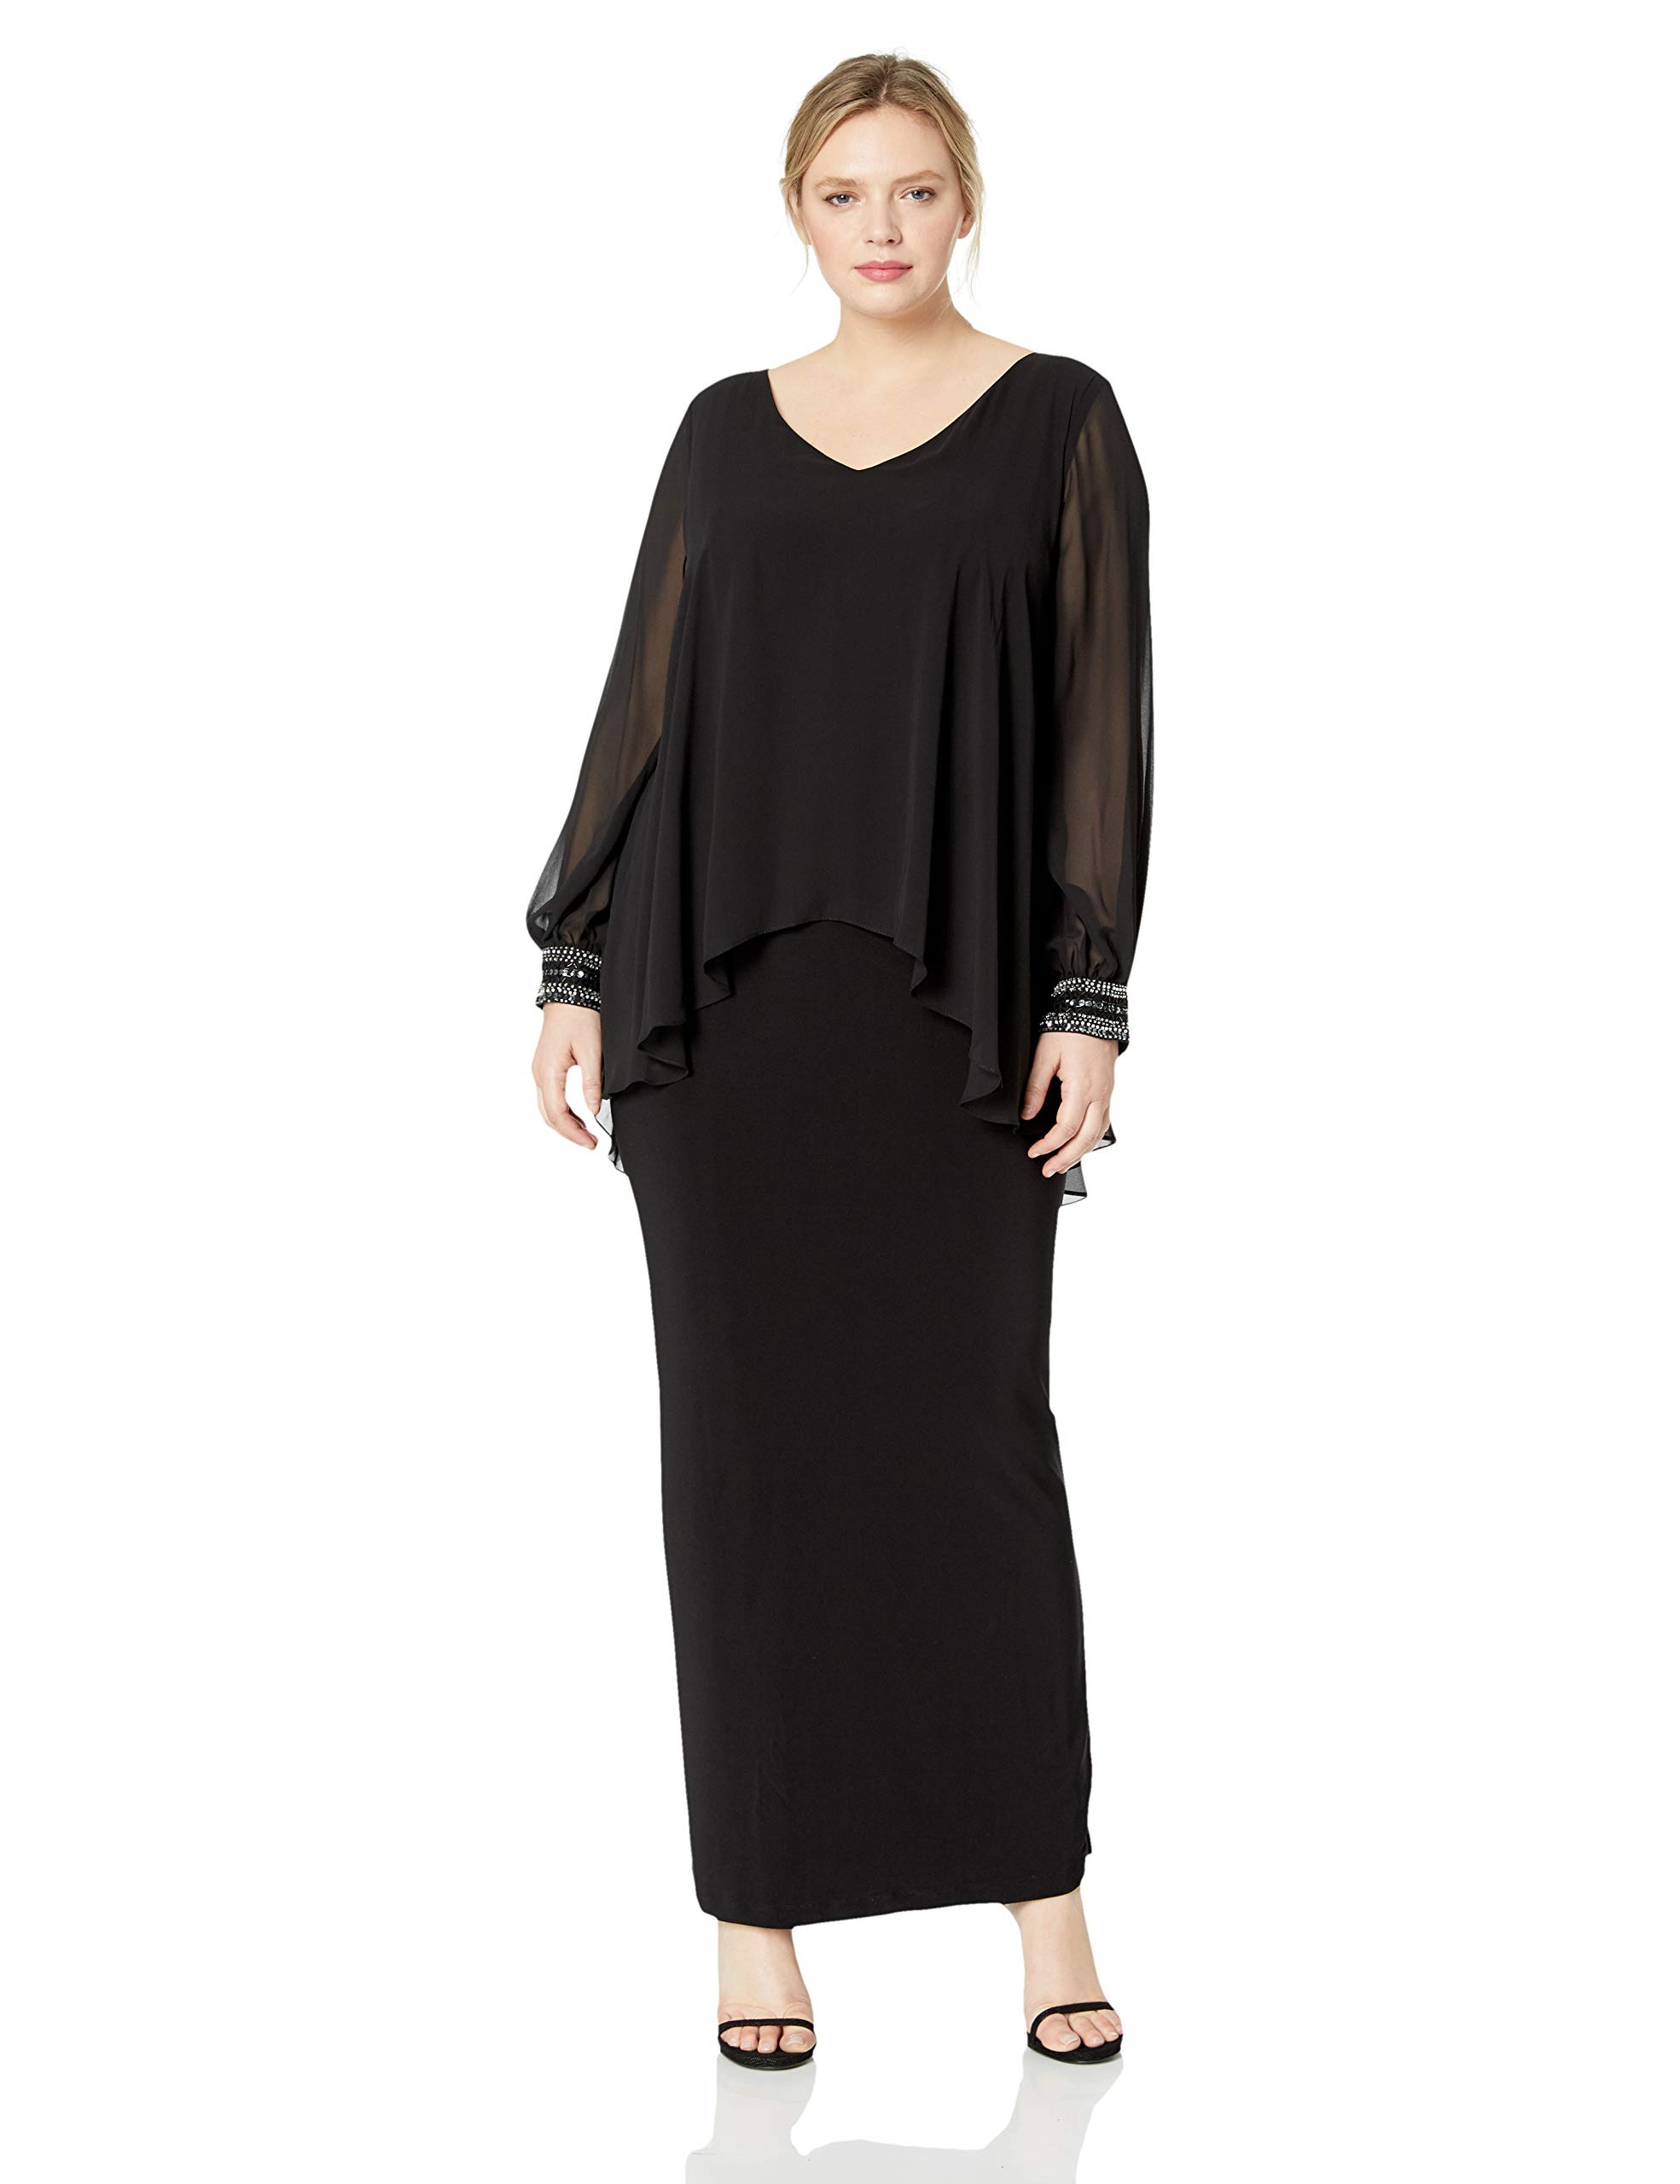 Alex Evenings Women's Plus Size Long V-Neck Column Dress with Illusion Sleeves, Black, 20W by Alex Evenings